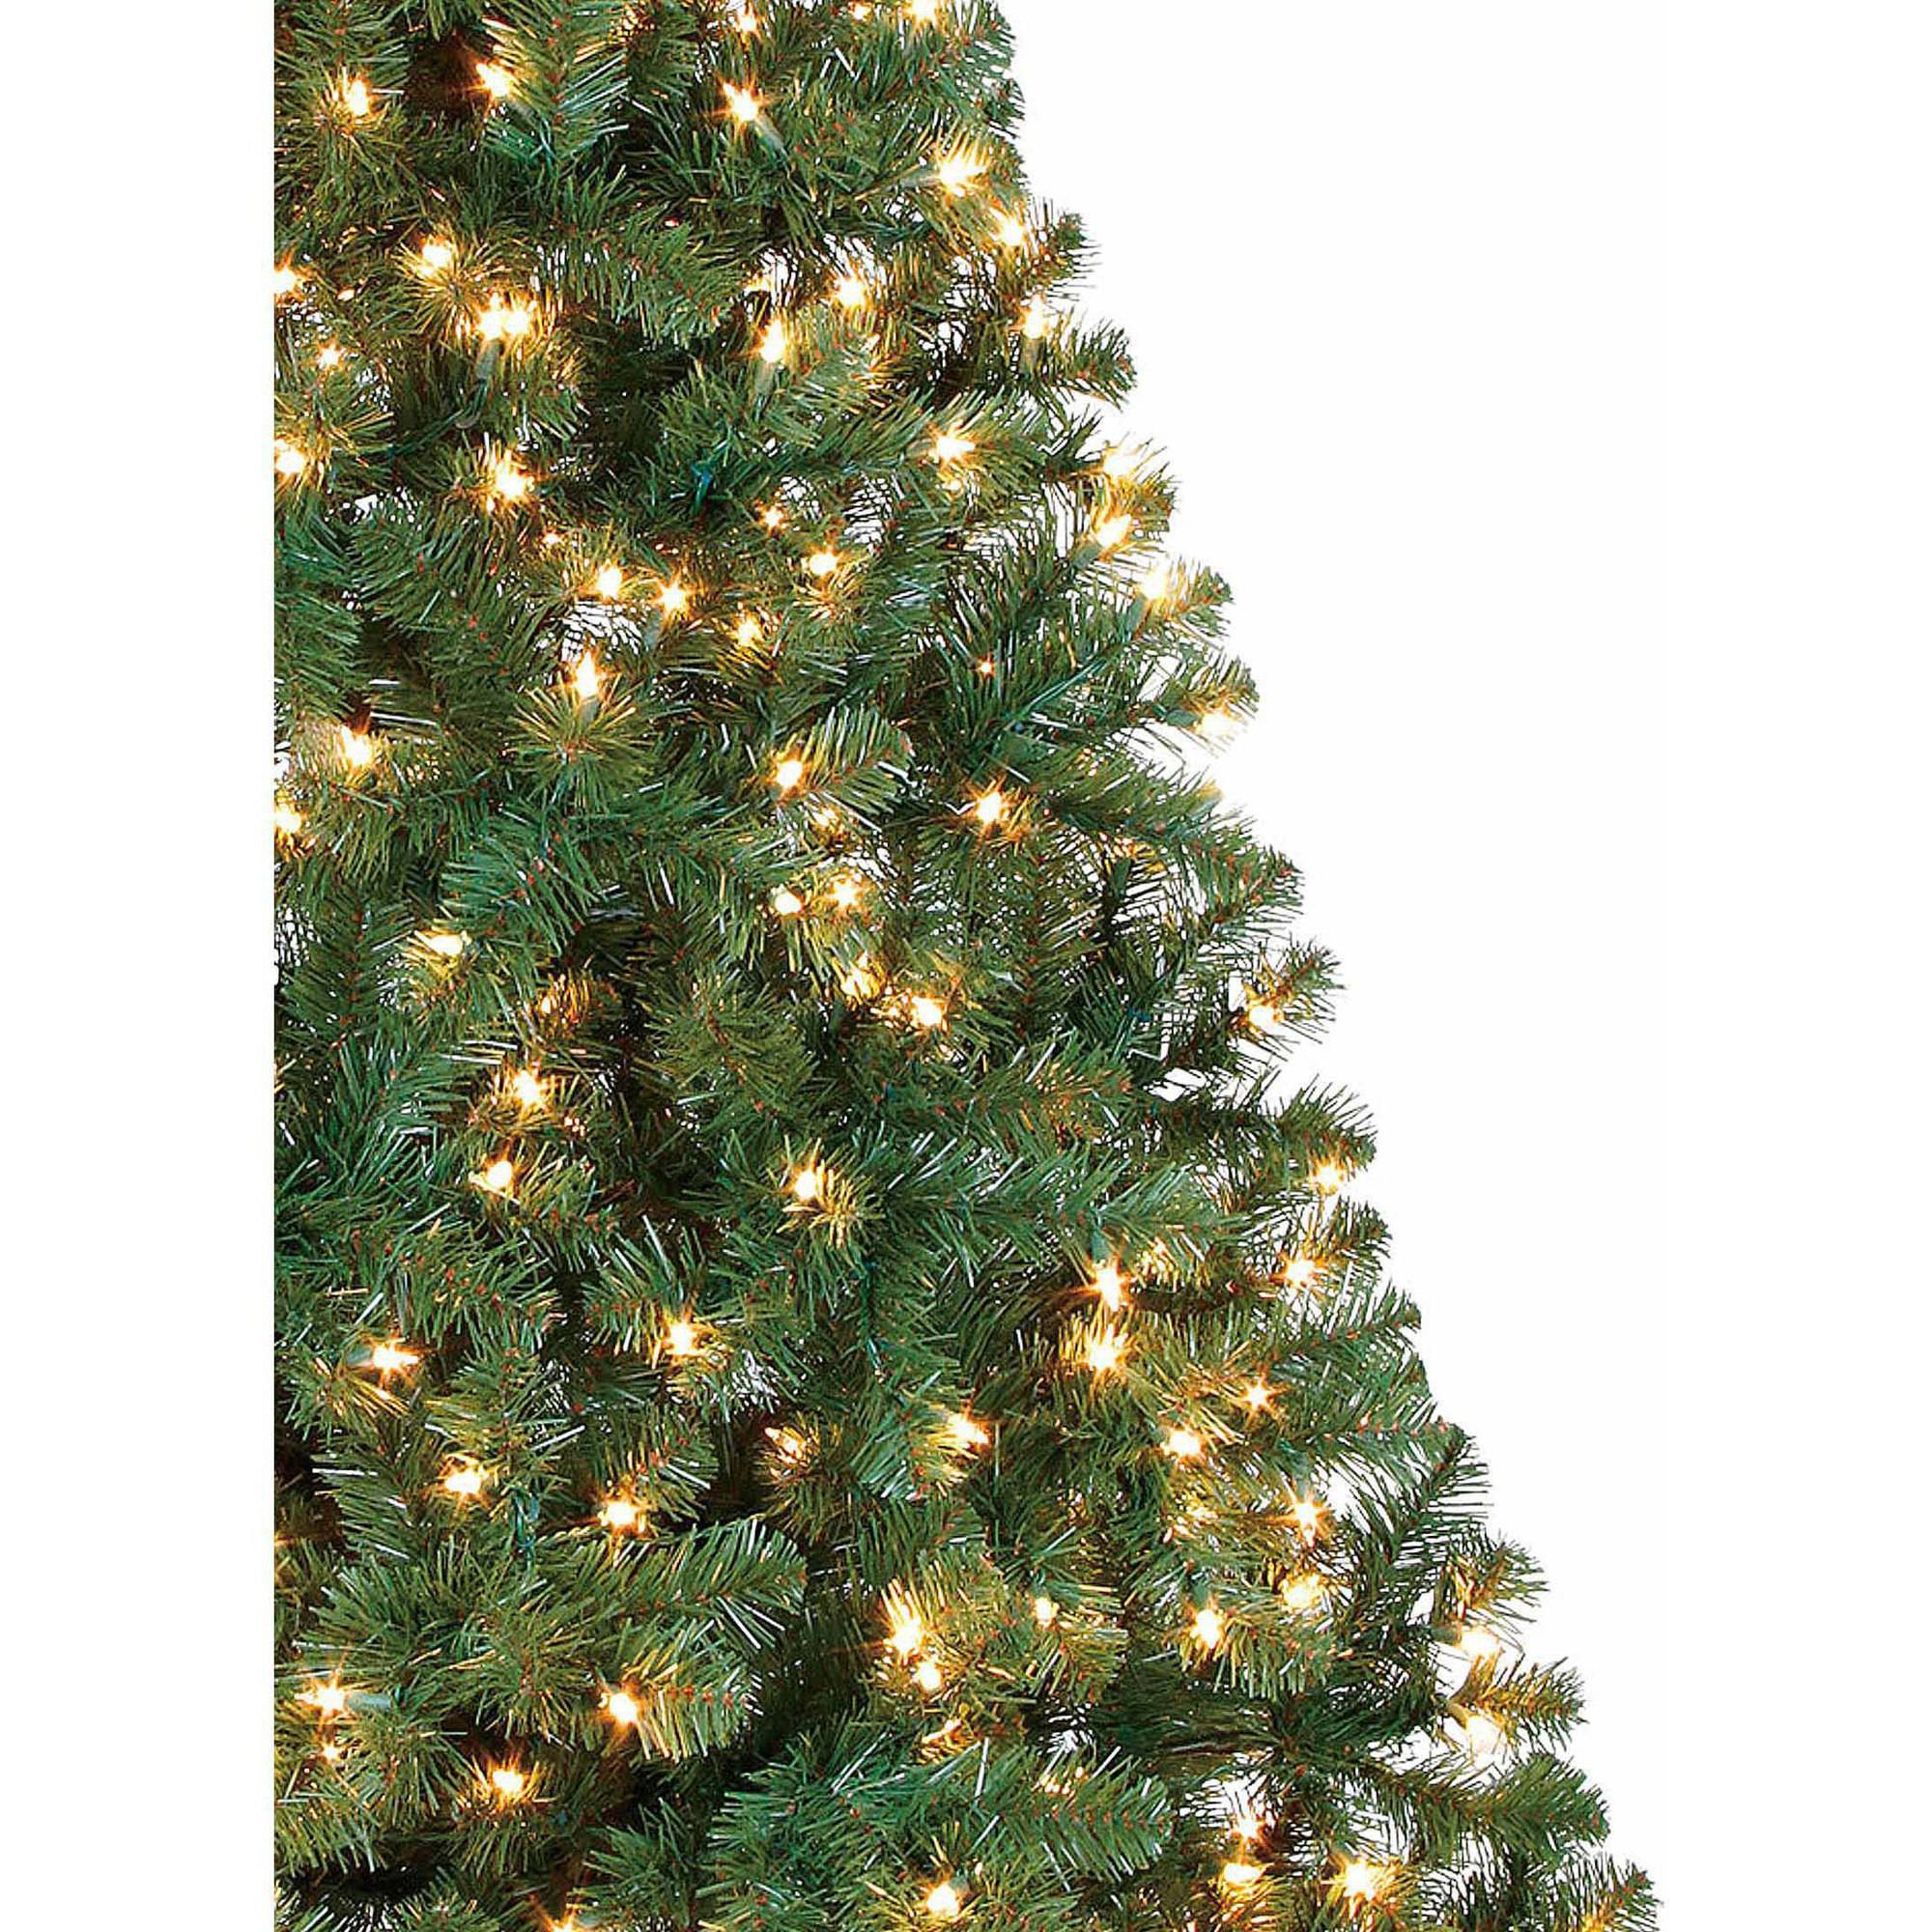 25ca0e2f 1902 4397 b5fb 8edbeb429926_1.c73e7d2b3a8220ebe1ac9392c313f762 holiday time pre lit 6 5' madison pine artificial christmas tree pre lit christmas tree wiring diagram at gsmx.co